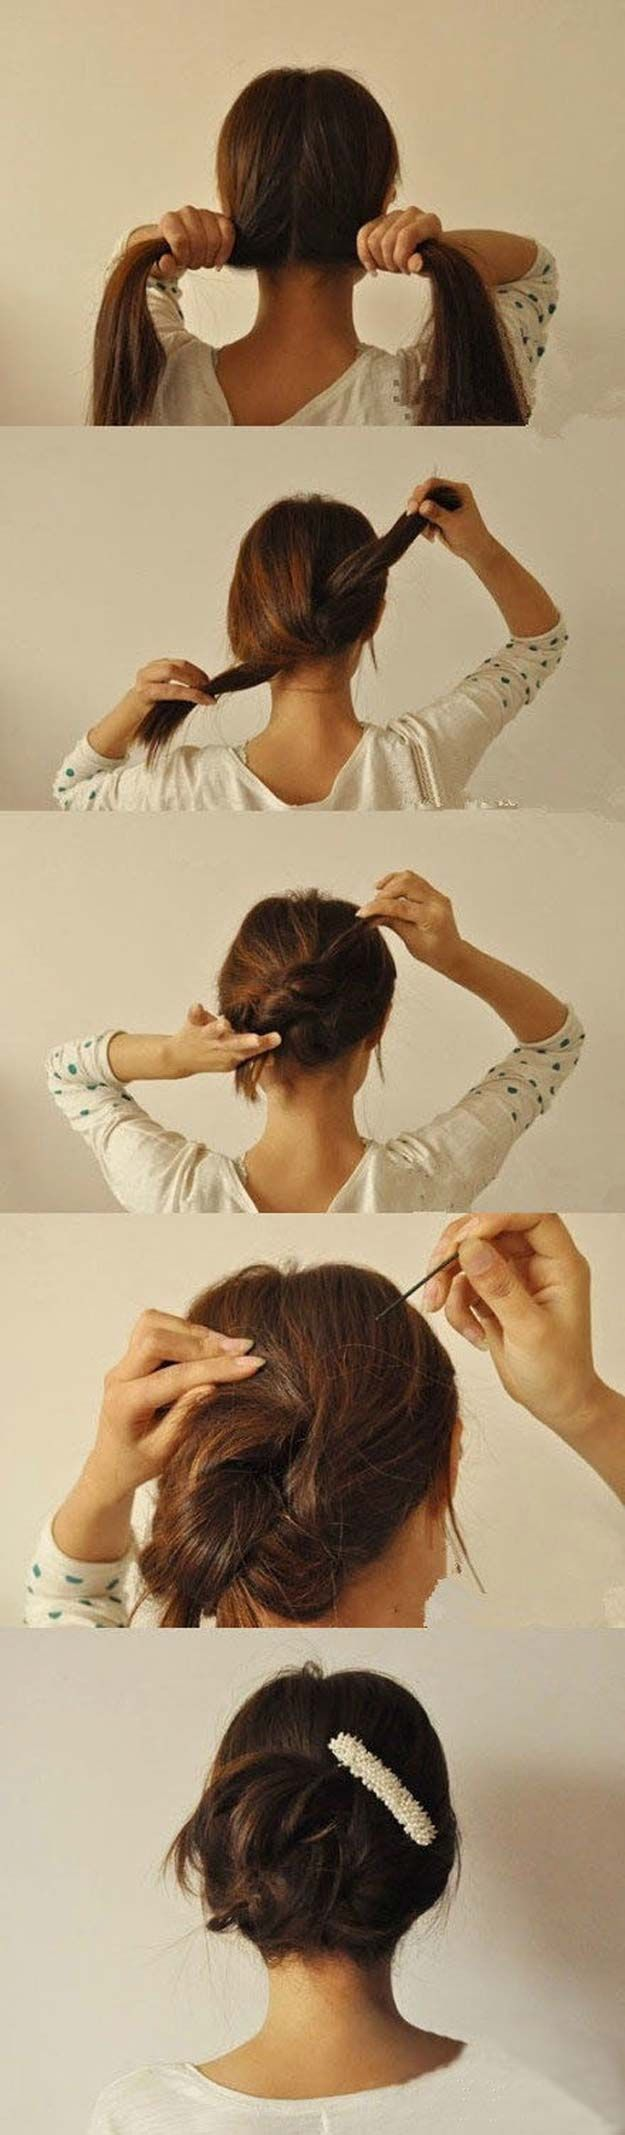 Best Hairstyles for Long Hair - Updo Hairstyle - Step by Step Tutorials for Easy Curls, Updo, Half Up, Braids and Lazy Girl Looks. Prom Ideas, Special Occasion Hair and Braiding Instructions for Teens, Teenagers and Adults, Women and Girls http://diyprojectsforteens.stfi.re/best-hairstyles-long-hair